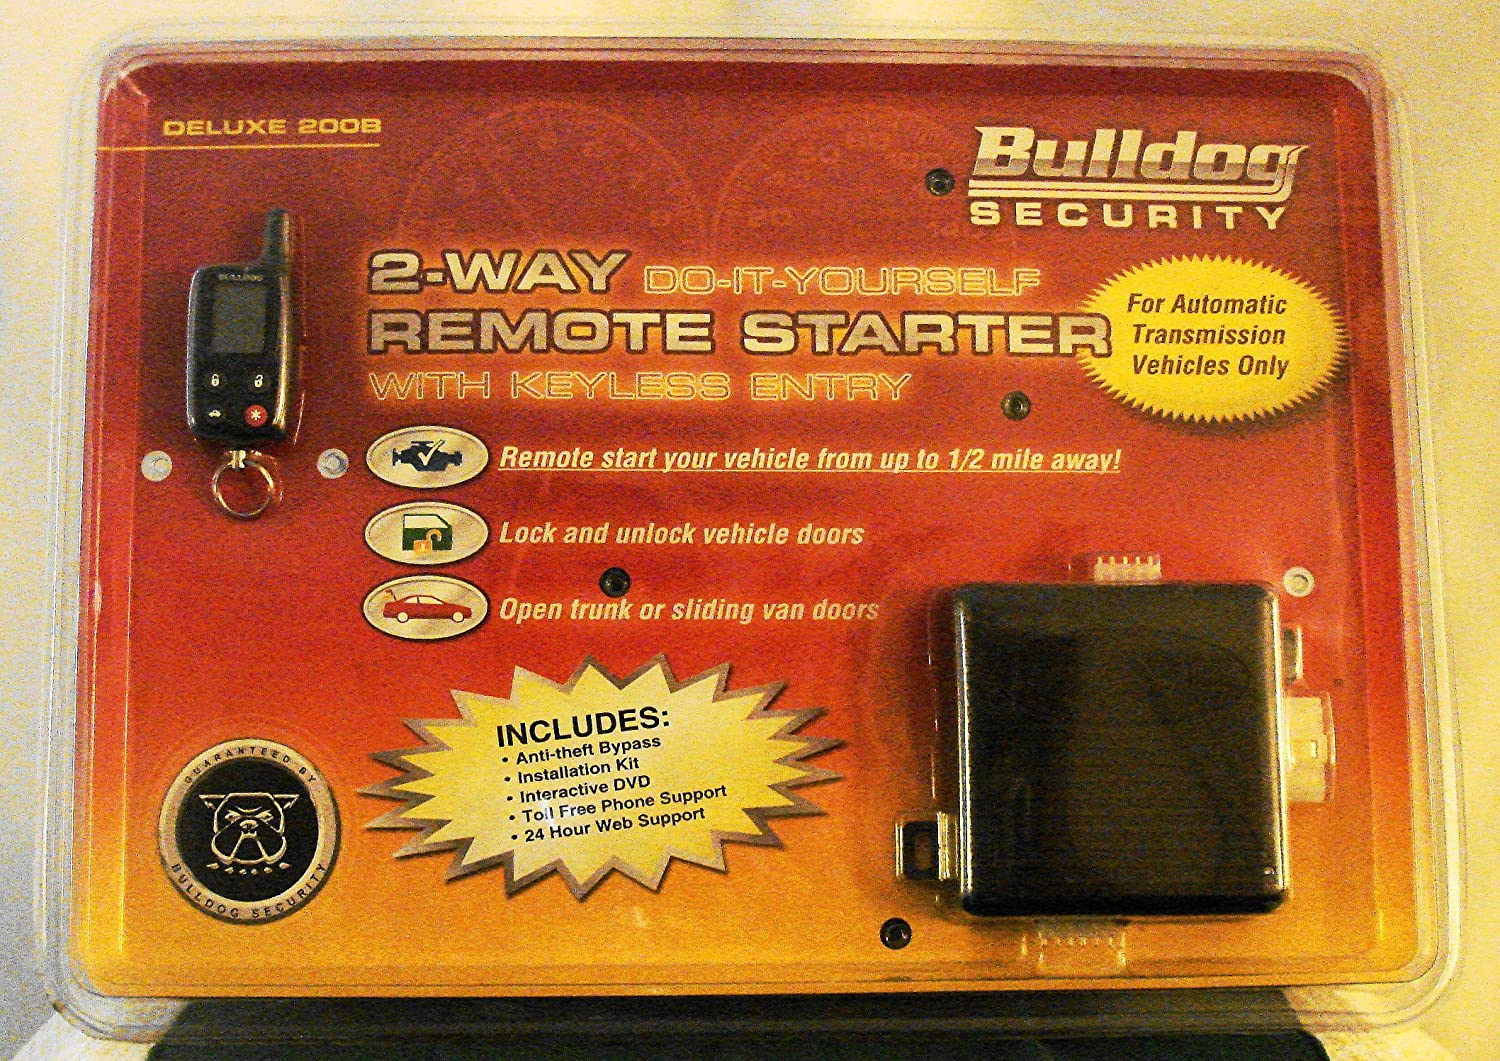 Delighted Bulldog Security Remote Starter With Keyless Entry Big Super Switch Wiring Shaped Security Bulldog Ibanez Dimarzio Young Bulldog Alarms Wiring DarkOff Grid Solar Wiring Diagram Security Remote Vehicle Starter System Model RS82 New In Box 400ft Rng